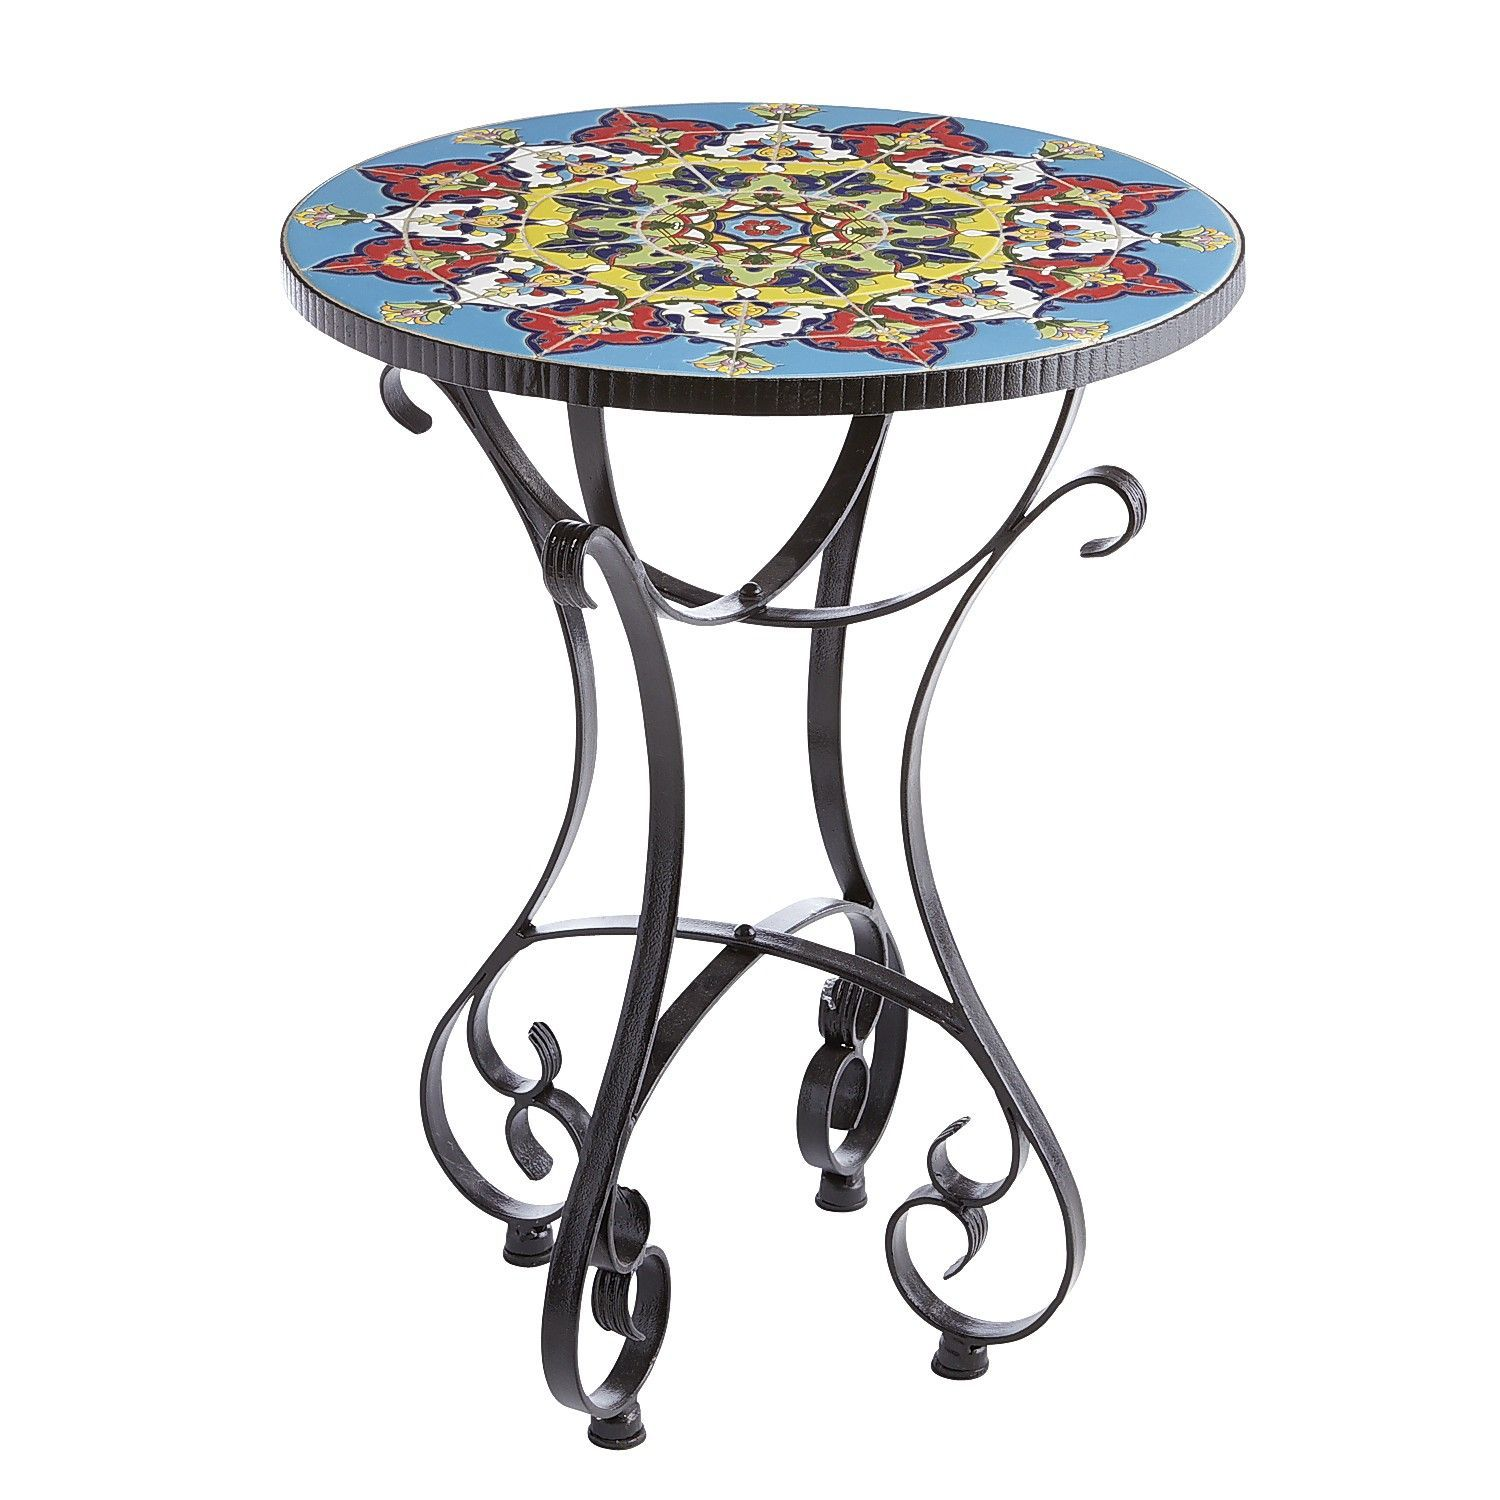 emilio mosaic accent table hand painted tile outdoor west elm morten lamp contemporary end lamps metal door threshold outside grills pub dining set two cabinet glass and chairs